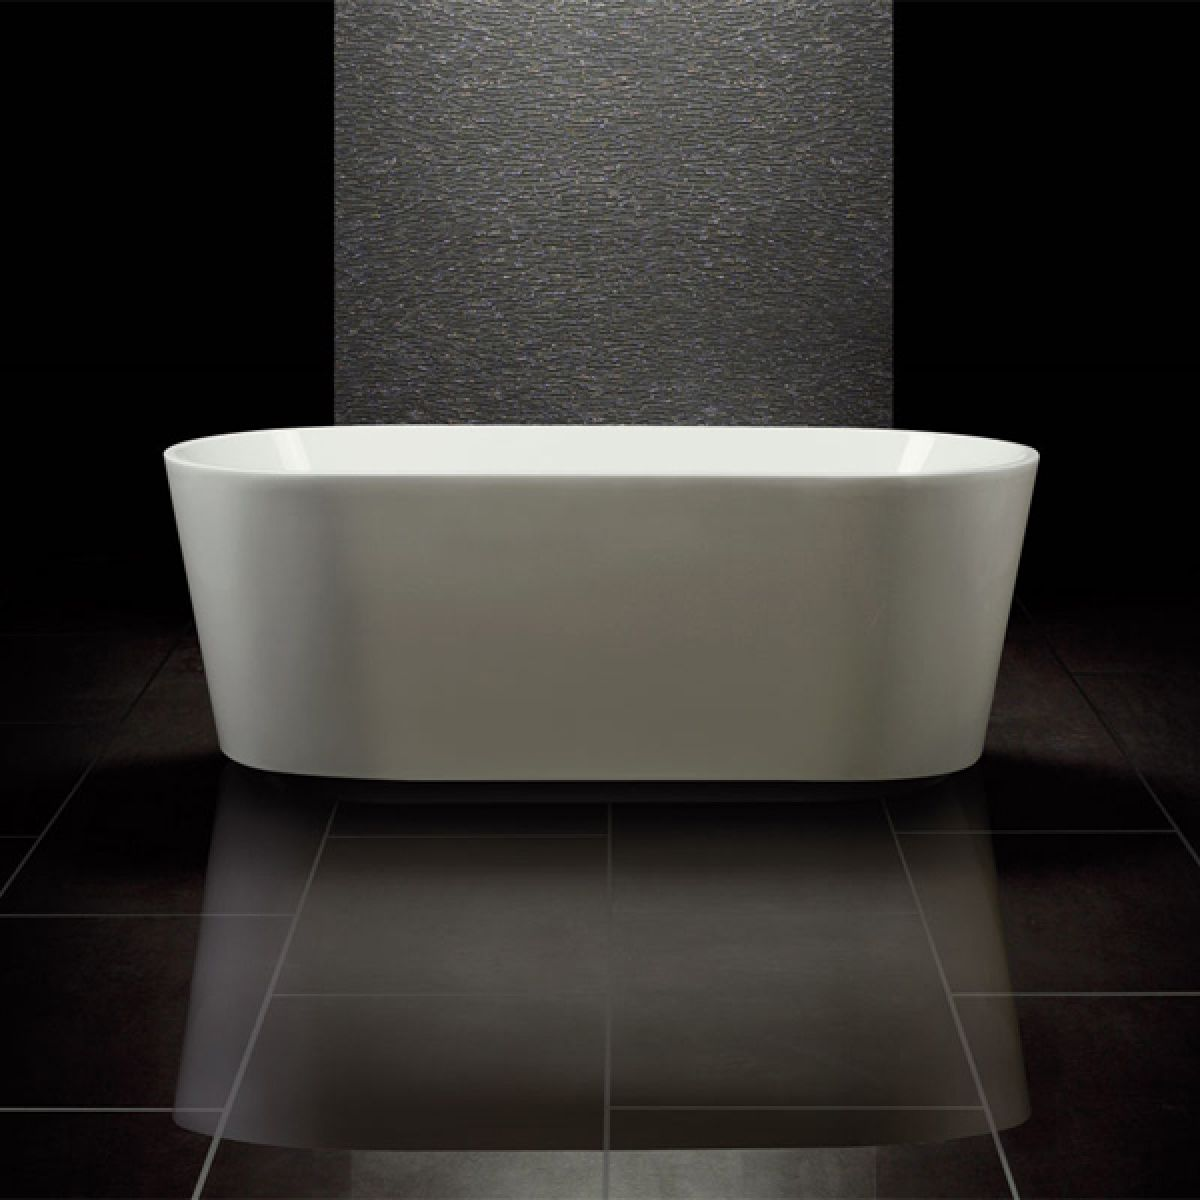 Royce Morgan Black Range Ruby White Freestanding Bath